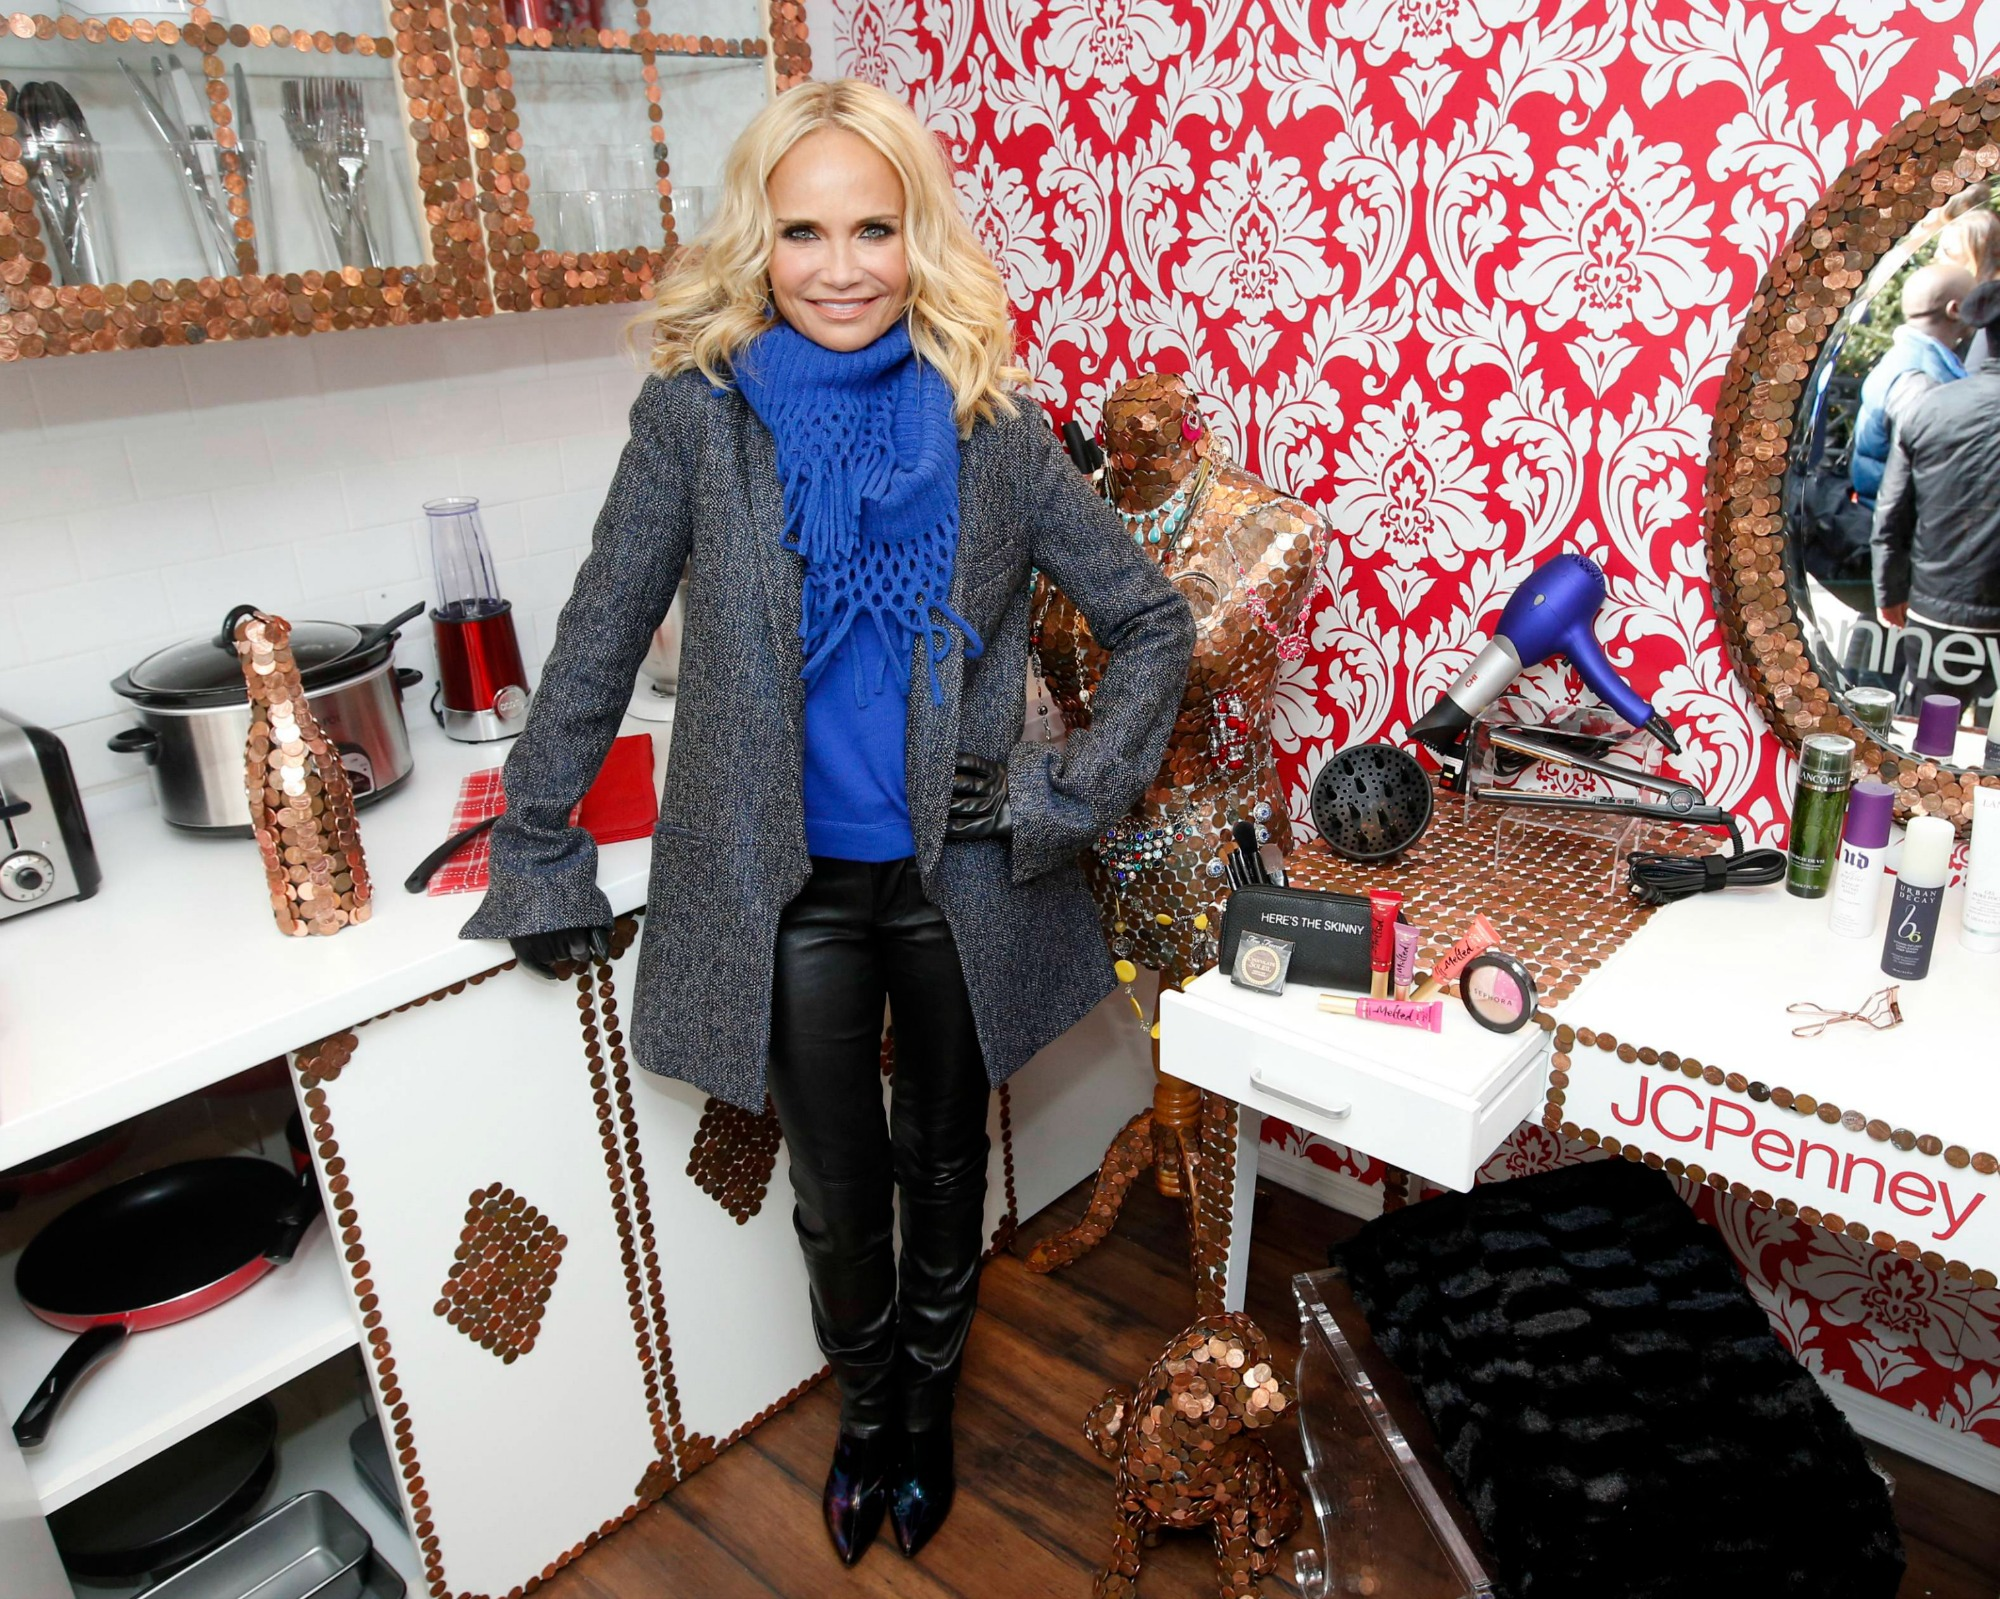 Actress and singer Kristin Chenoweth partners with JCPenney to launch their new Get Your Penney's Worth campaign, Wednesday, March 2, 2016 in New York. JCPenney is doing whatever it takes to make sure every shopping experience is worth shopper's time, money and effort. (Photo by Jason DeCrow/Invision for JCPenney/AP Images)